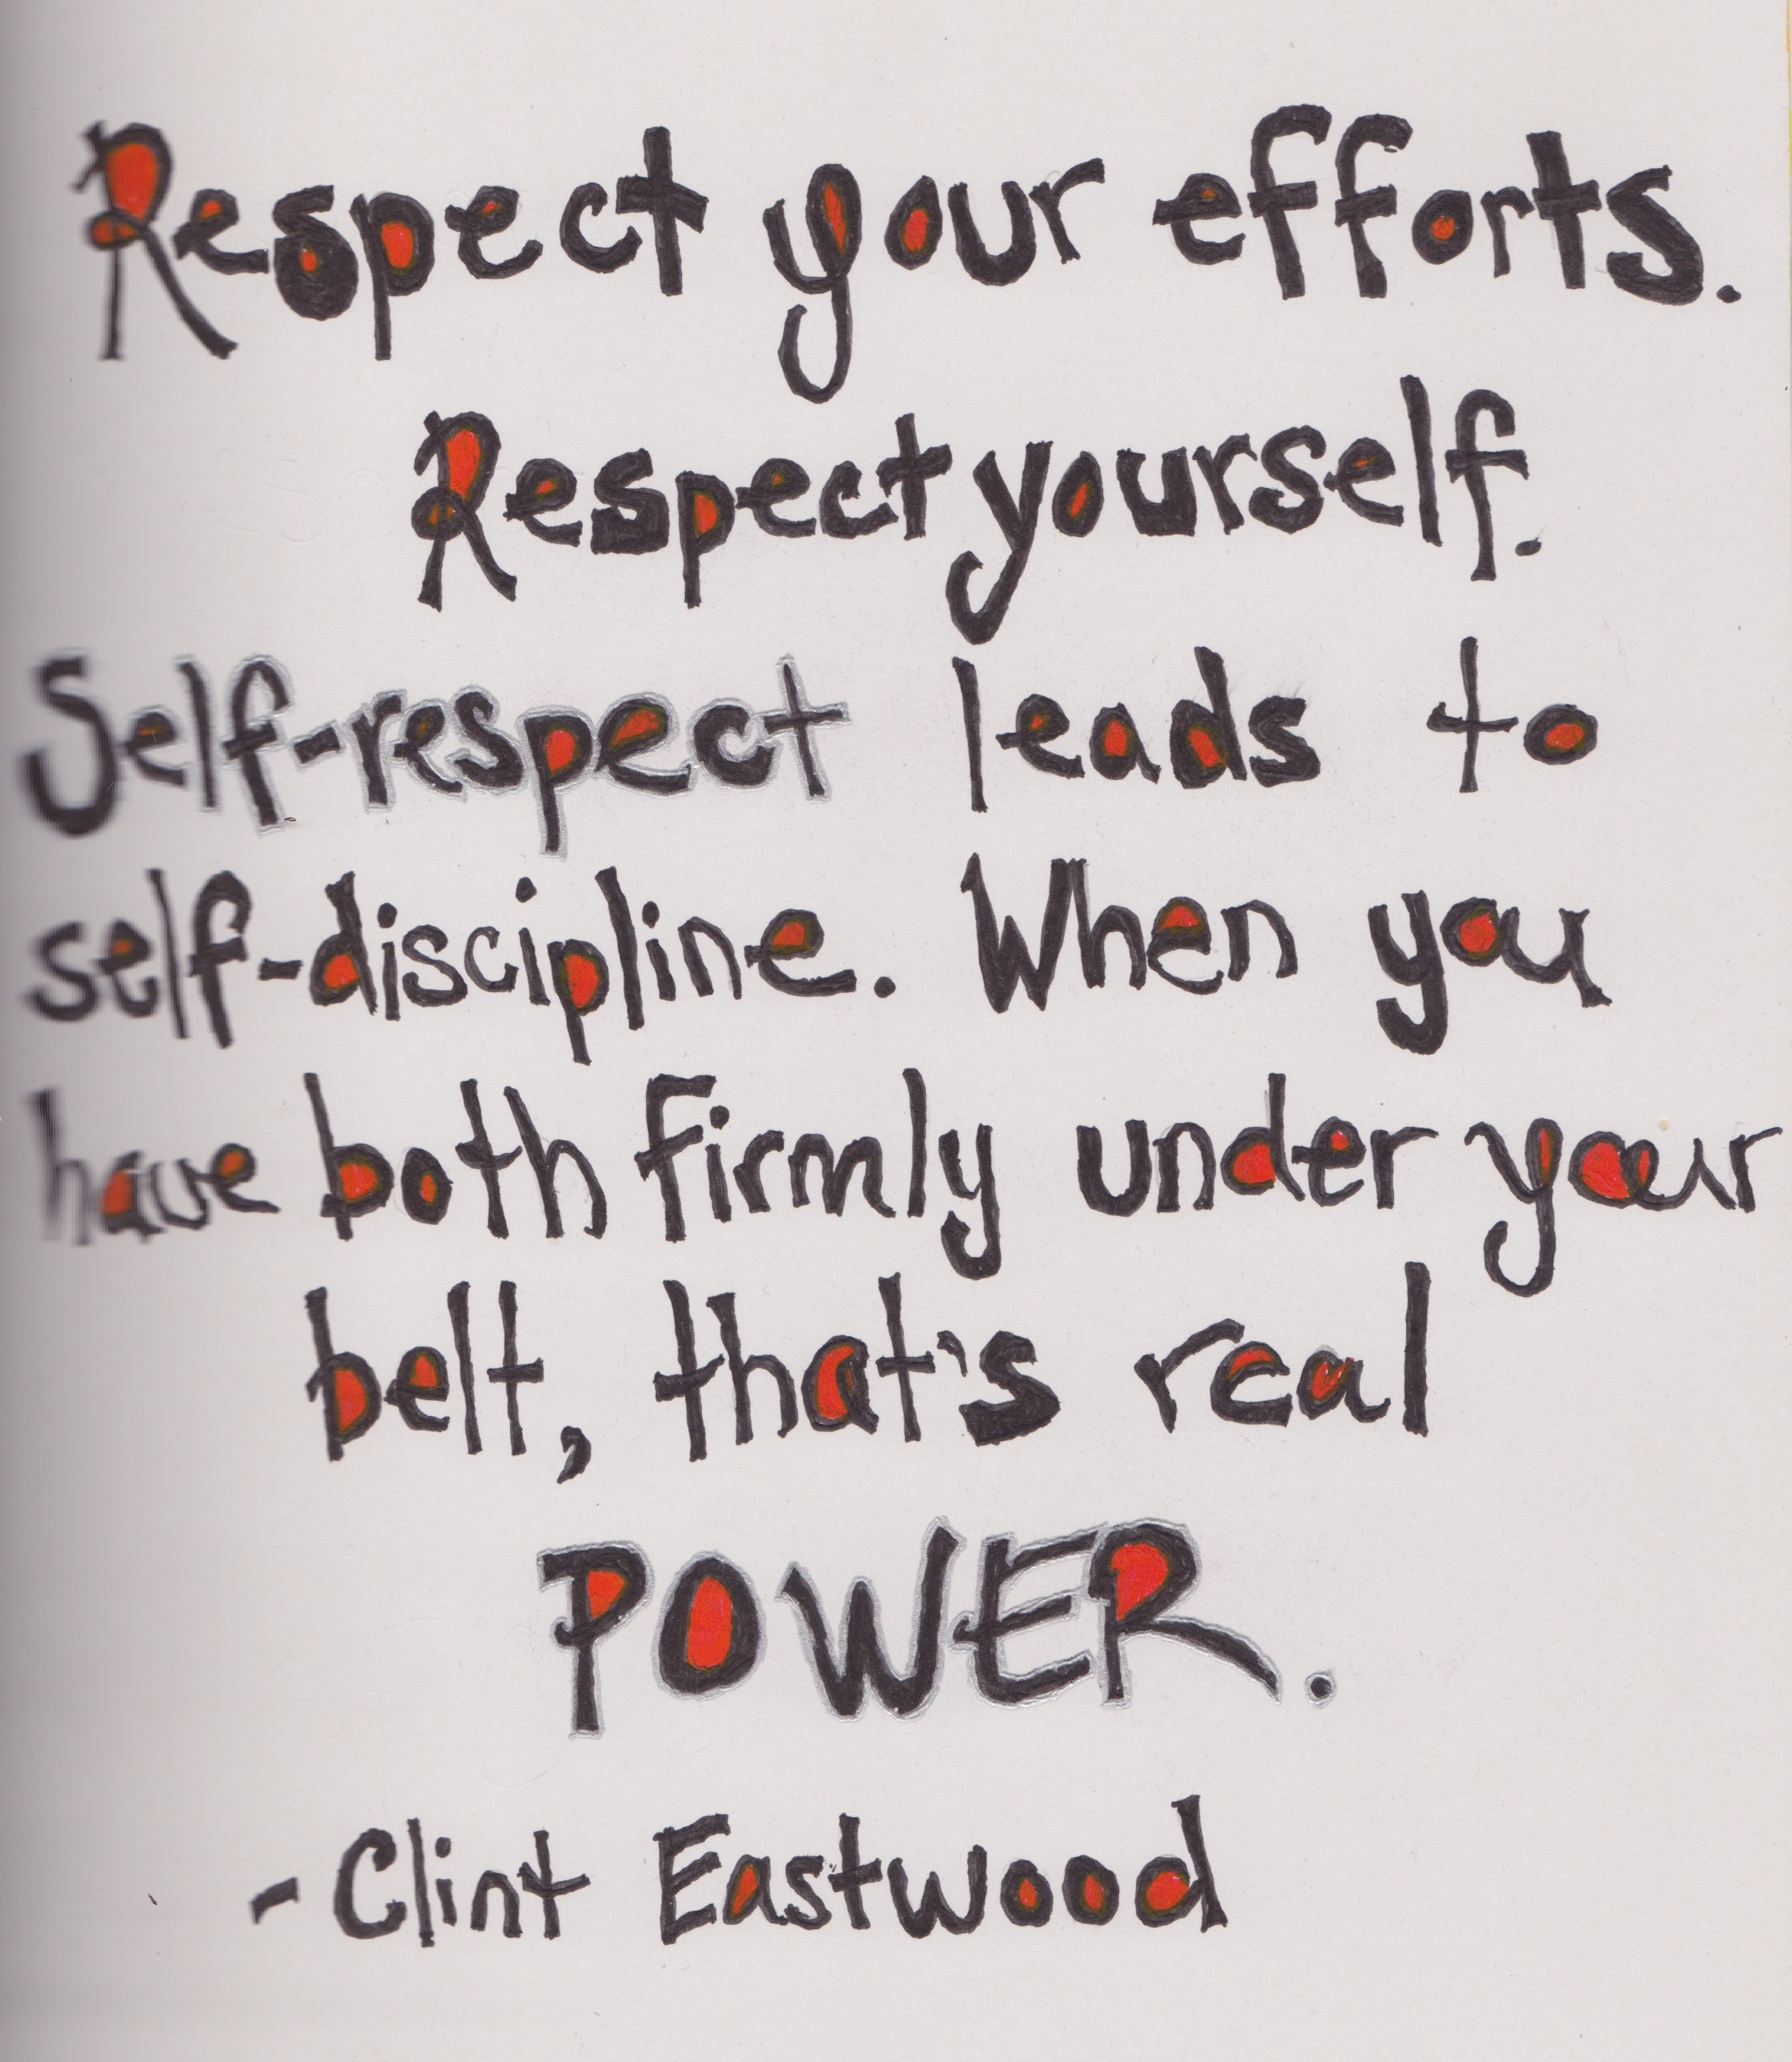 respect-your-efforts-respect-youself-self-discipline-self-respect-quote